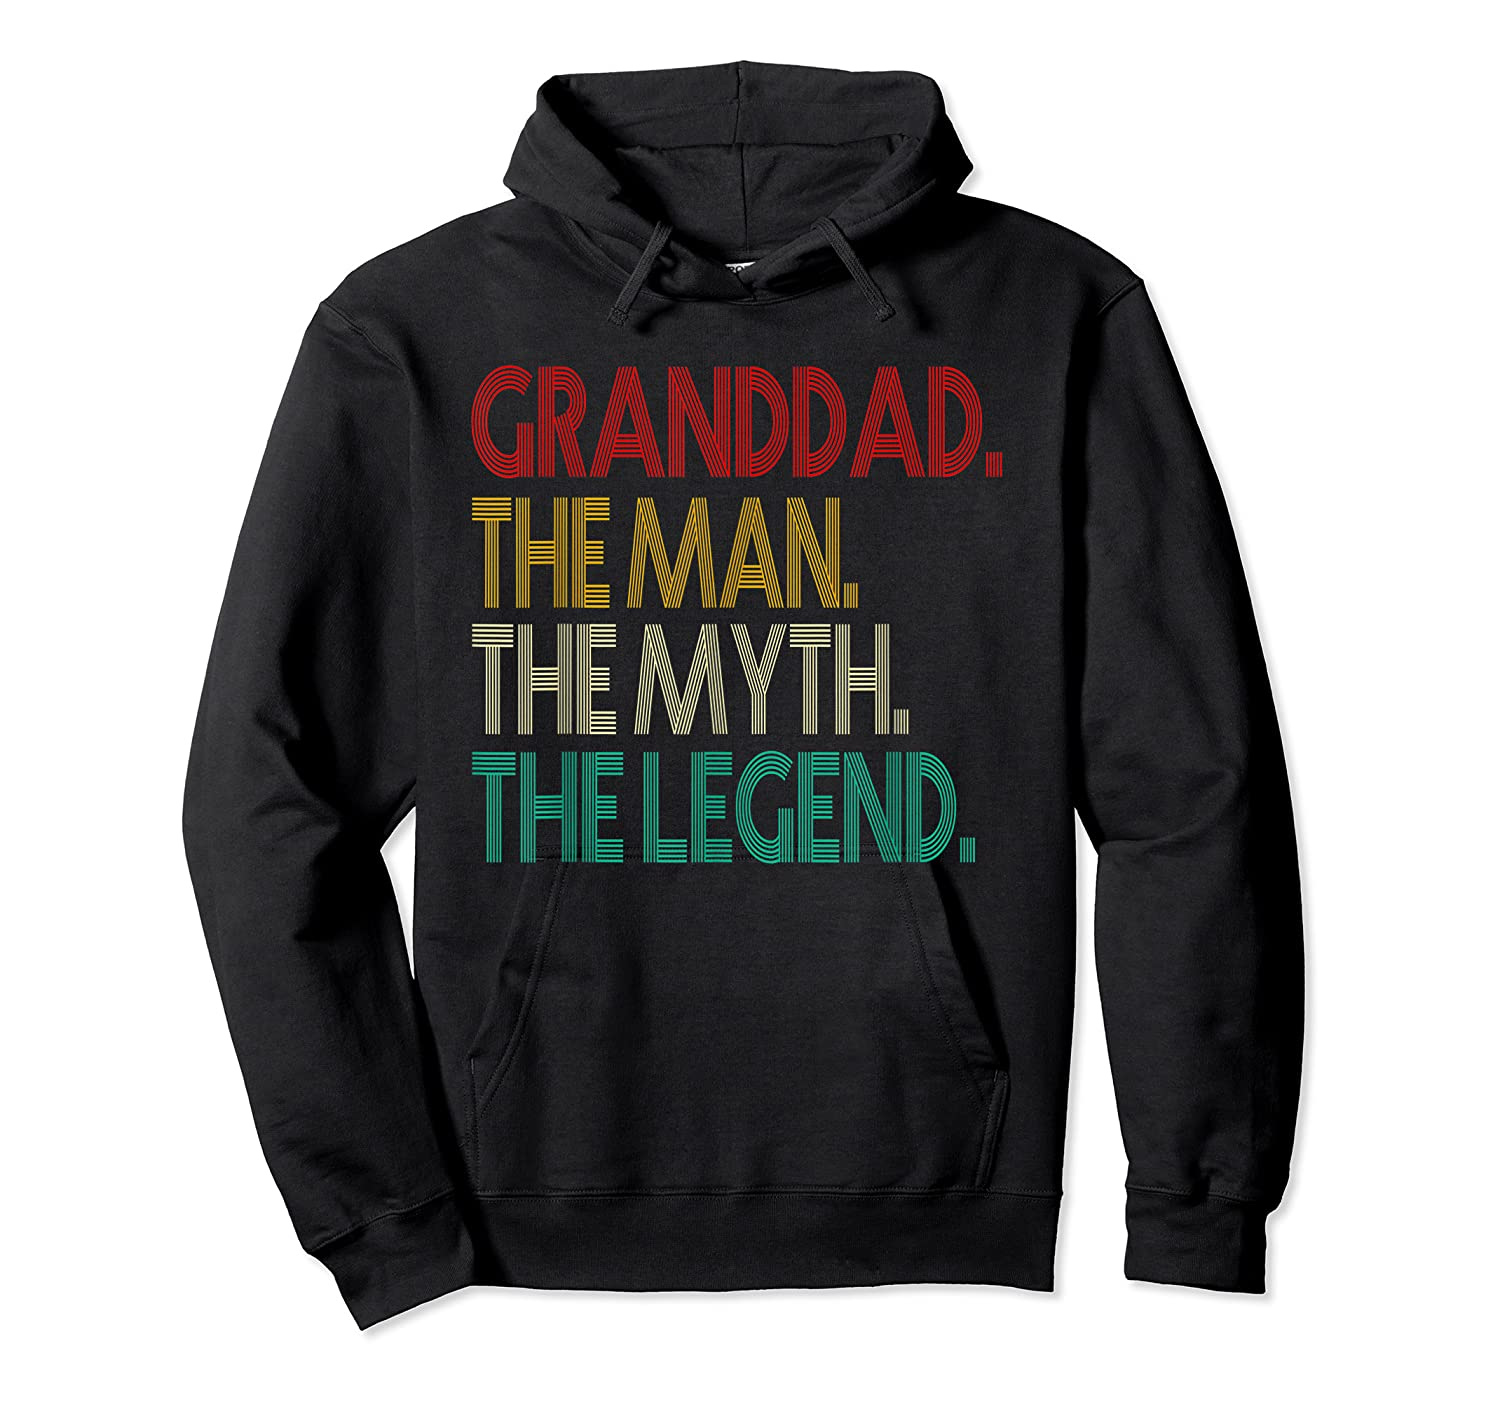 Granddad The Man The Myth The Legend Gift For Grandd Shirts Unisex Pullover Hoodie